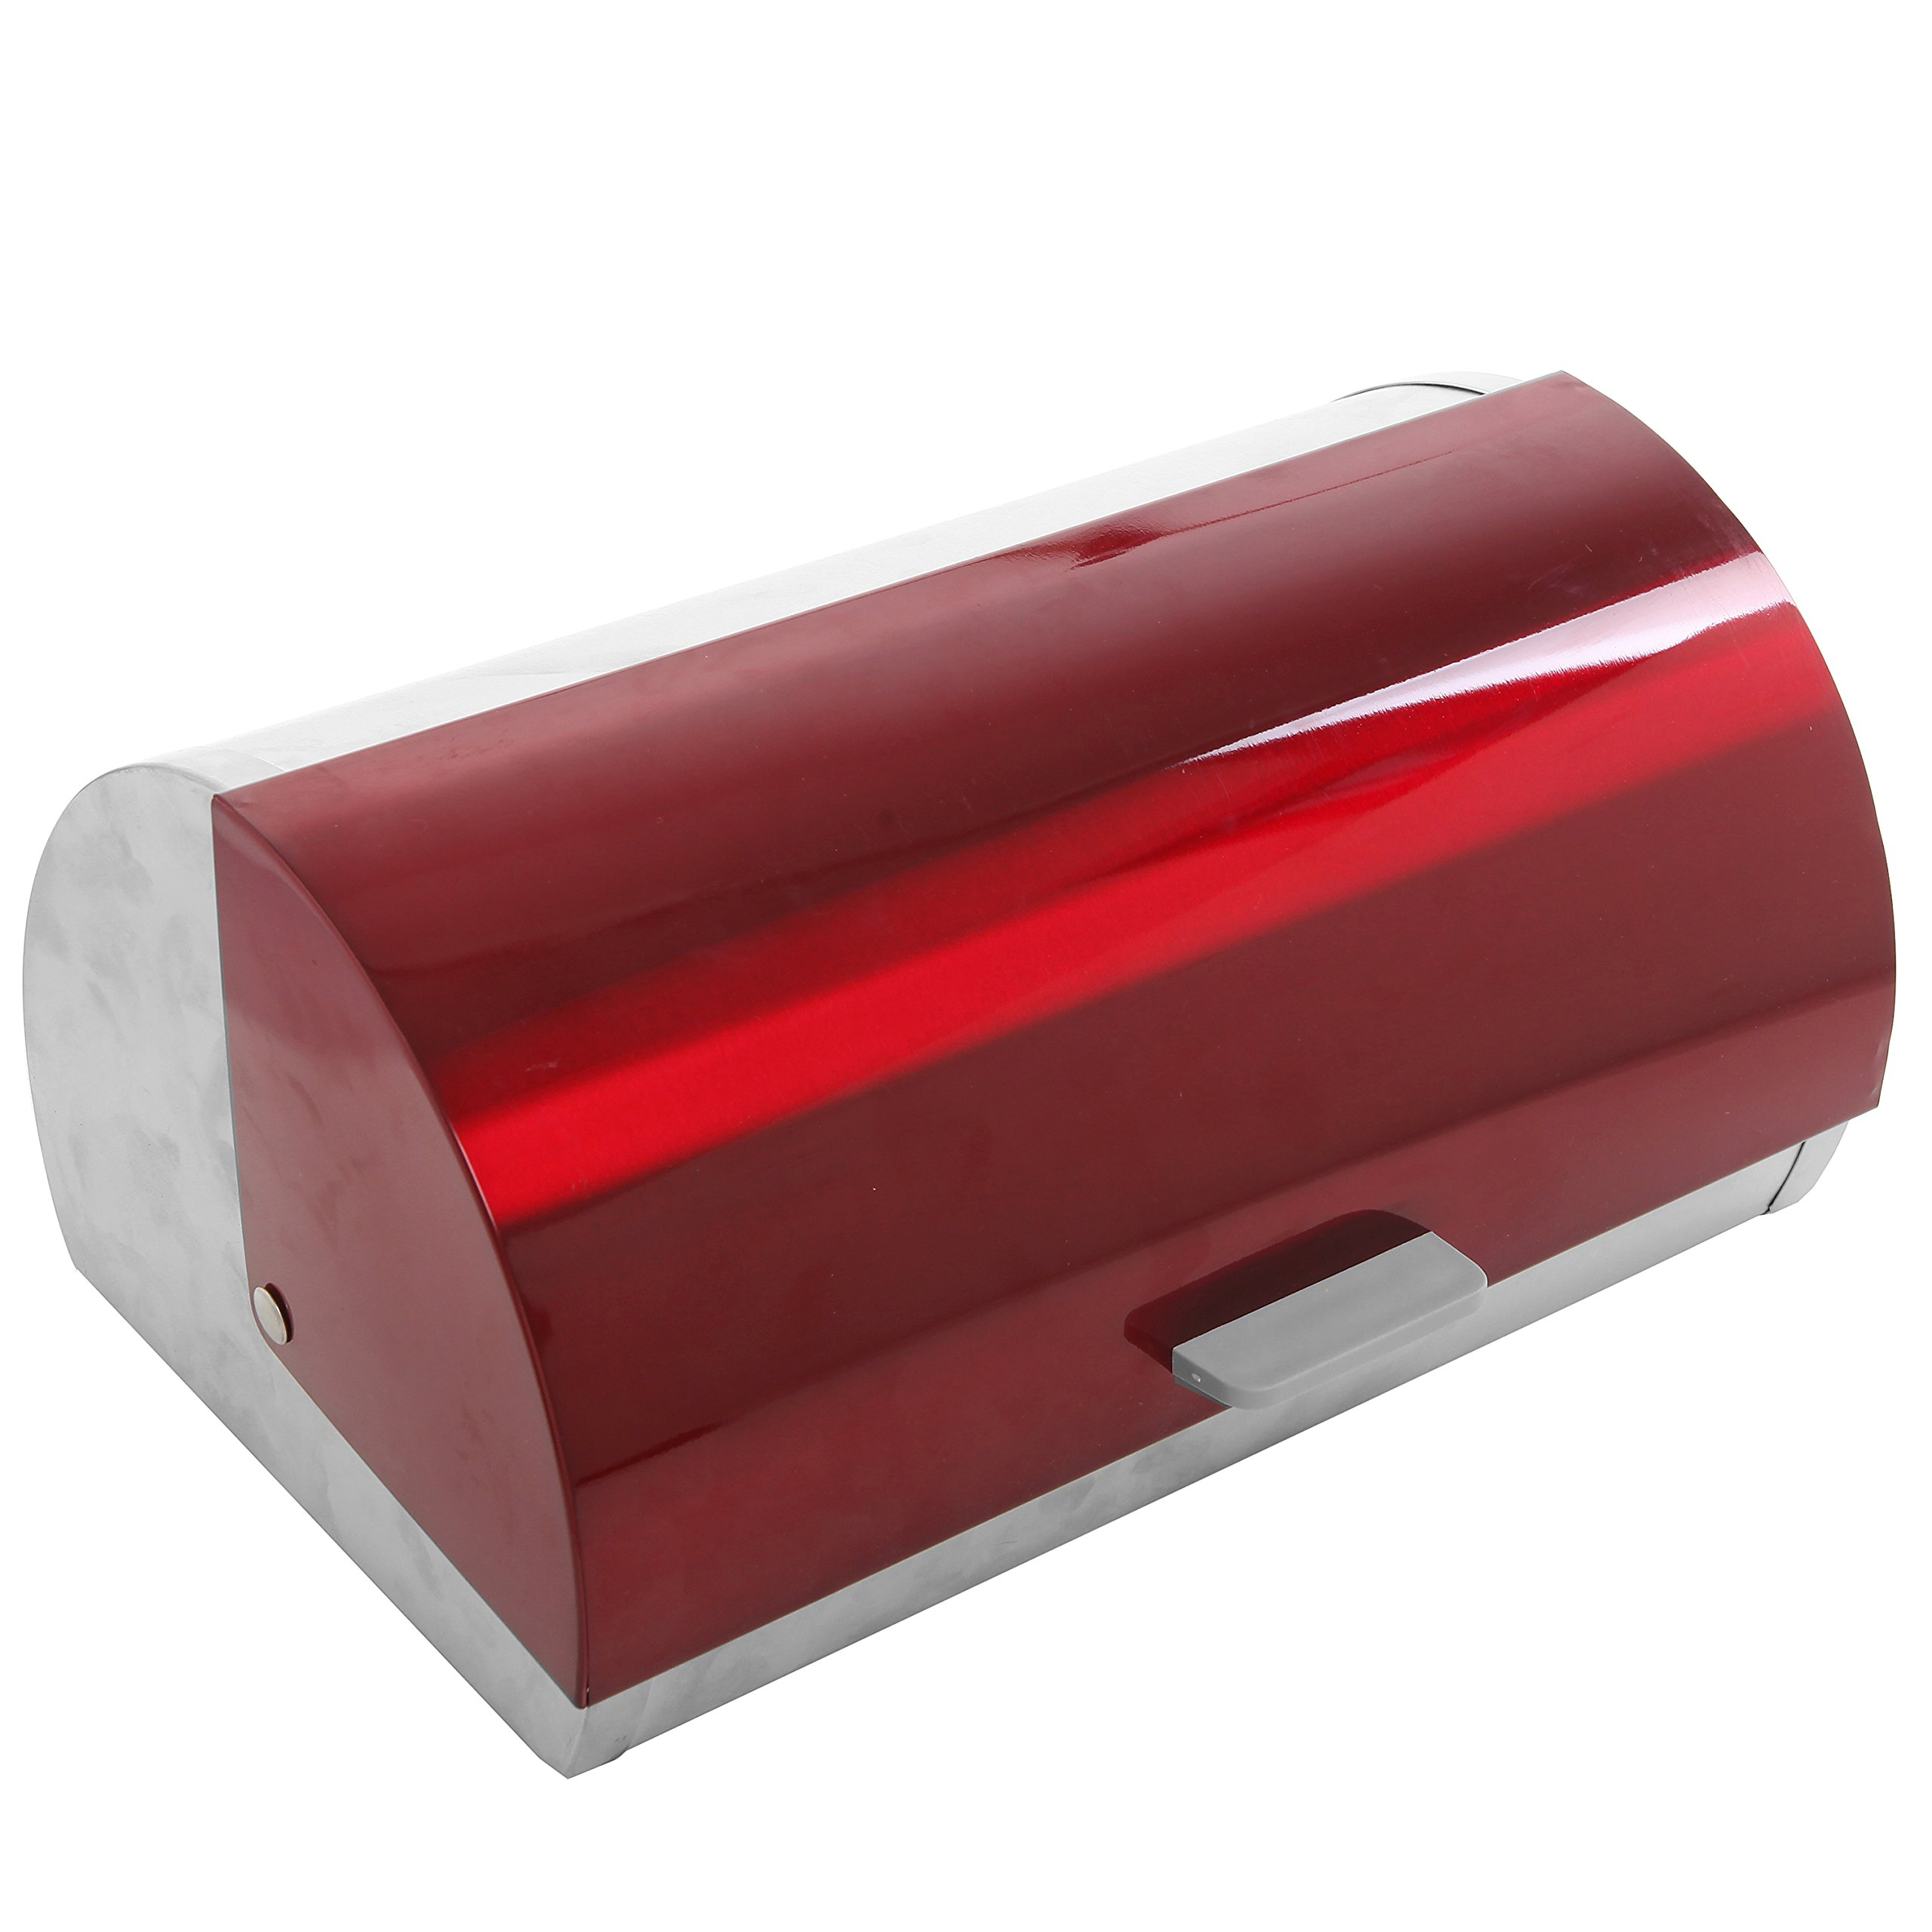 Designer Kitchen High Gloss Red Lidded Stainless Steel Metal Roll Top Bread Box / Storage Bin - MyGift by MyGift